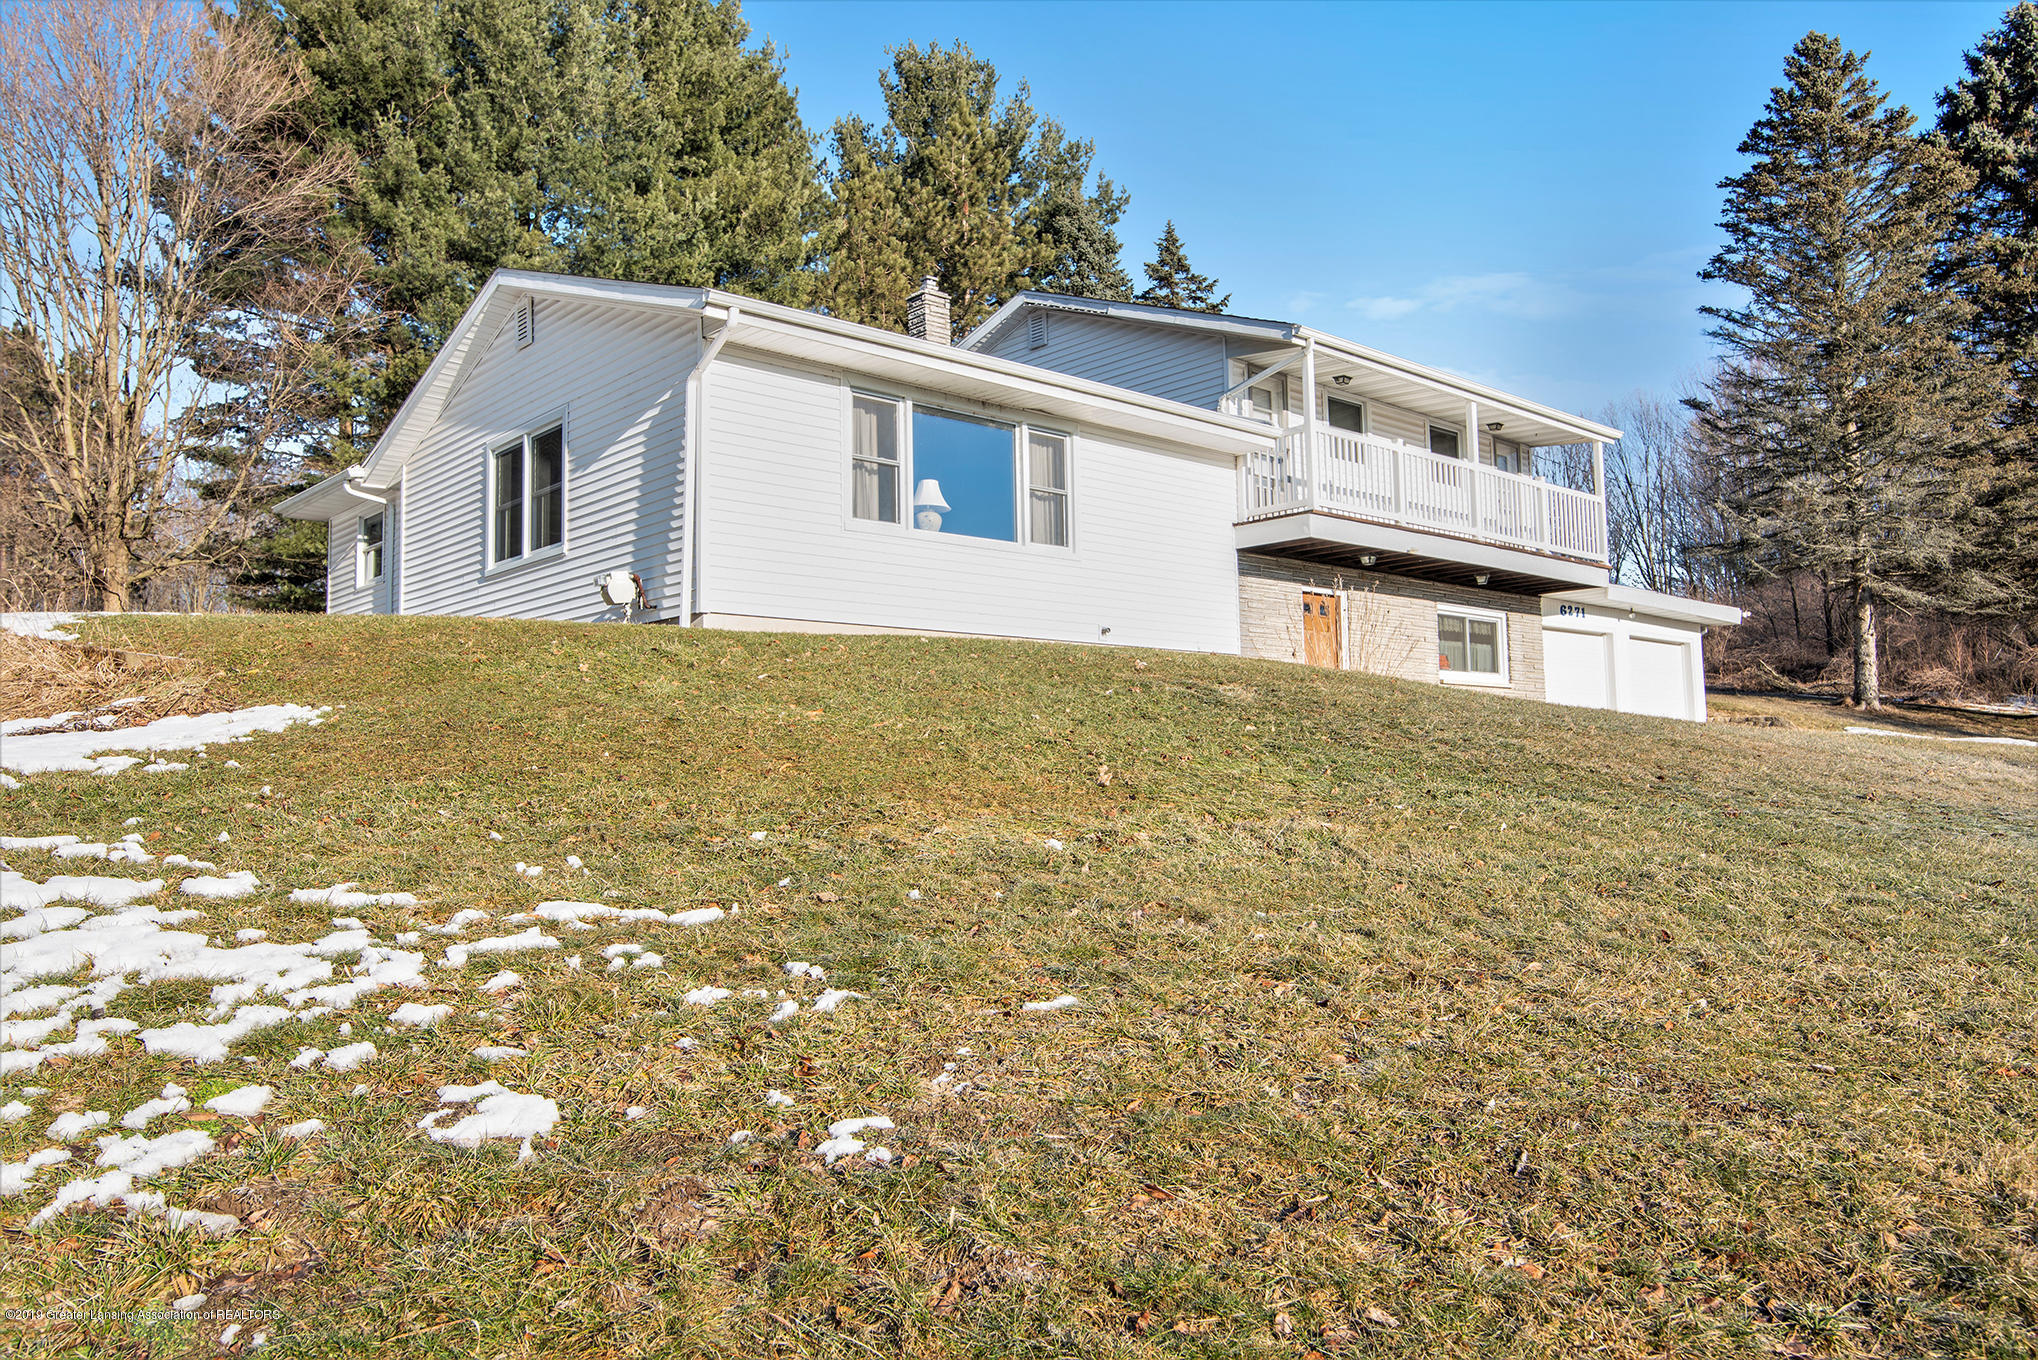 6271 Valley Trail - 21 - 21